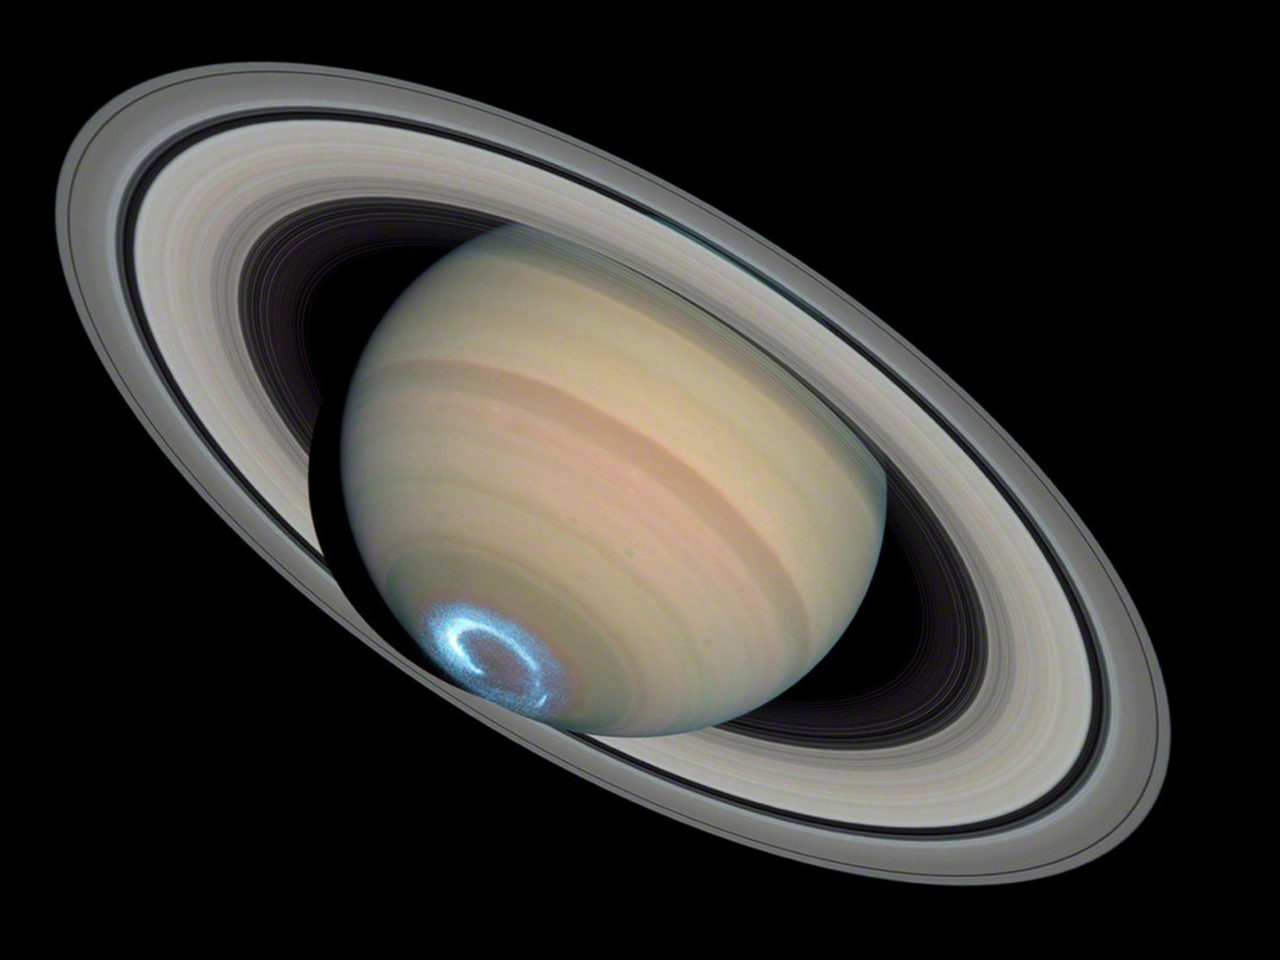 Free Download 3d Wallpaper For Android Tablet Saturn S Rings Look Bottom 0486 Wallpapers13 Com